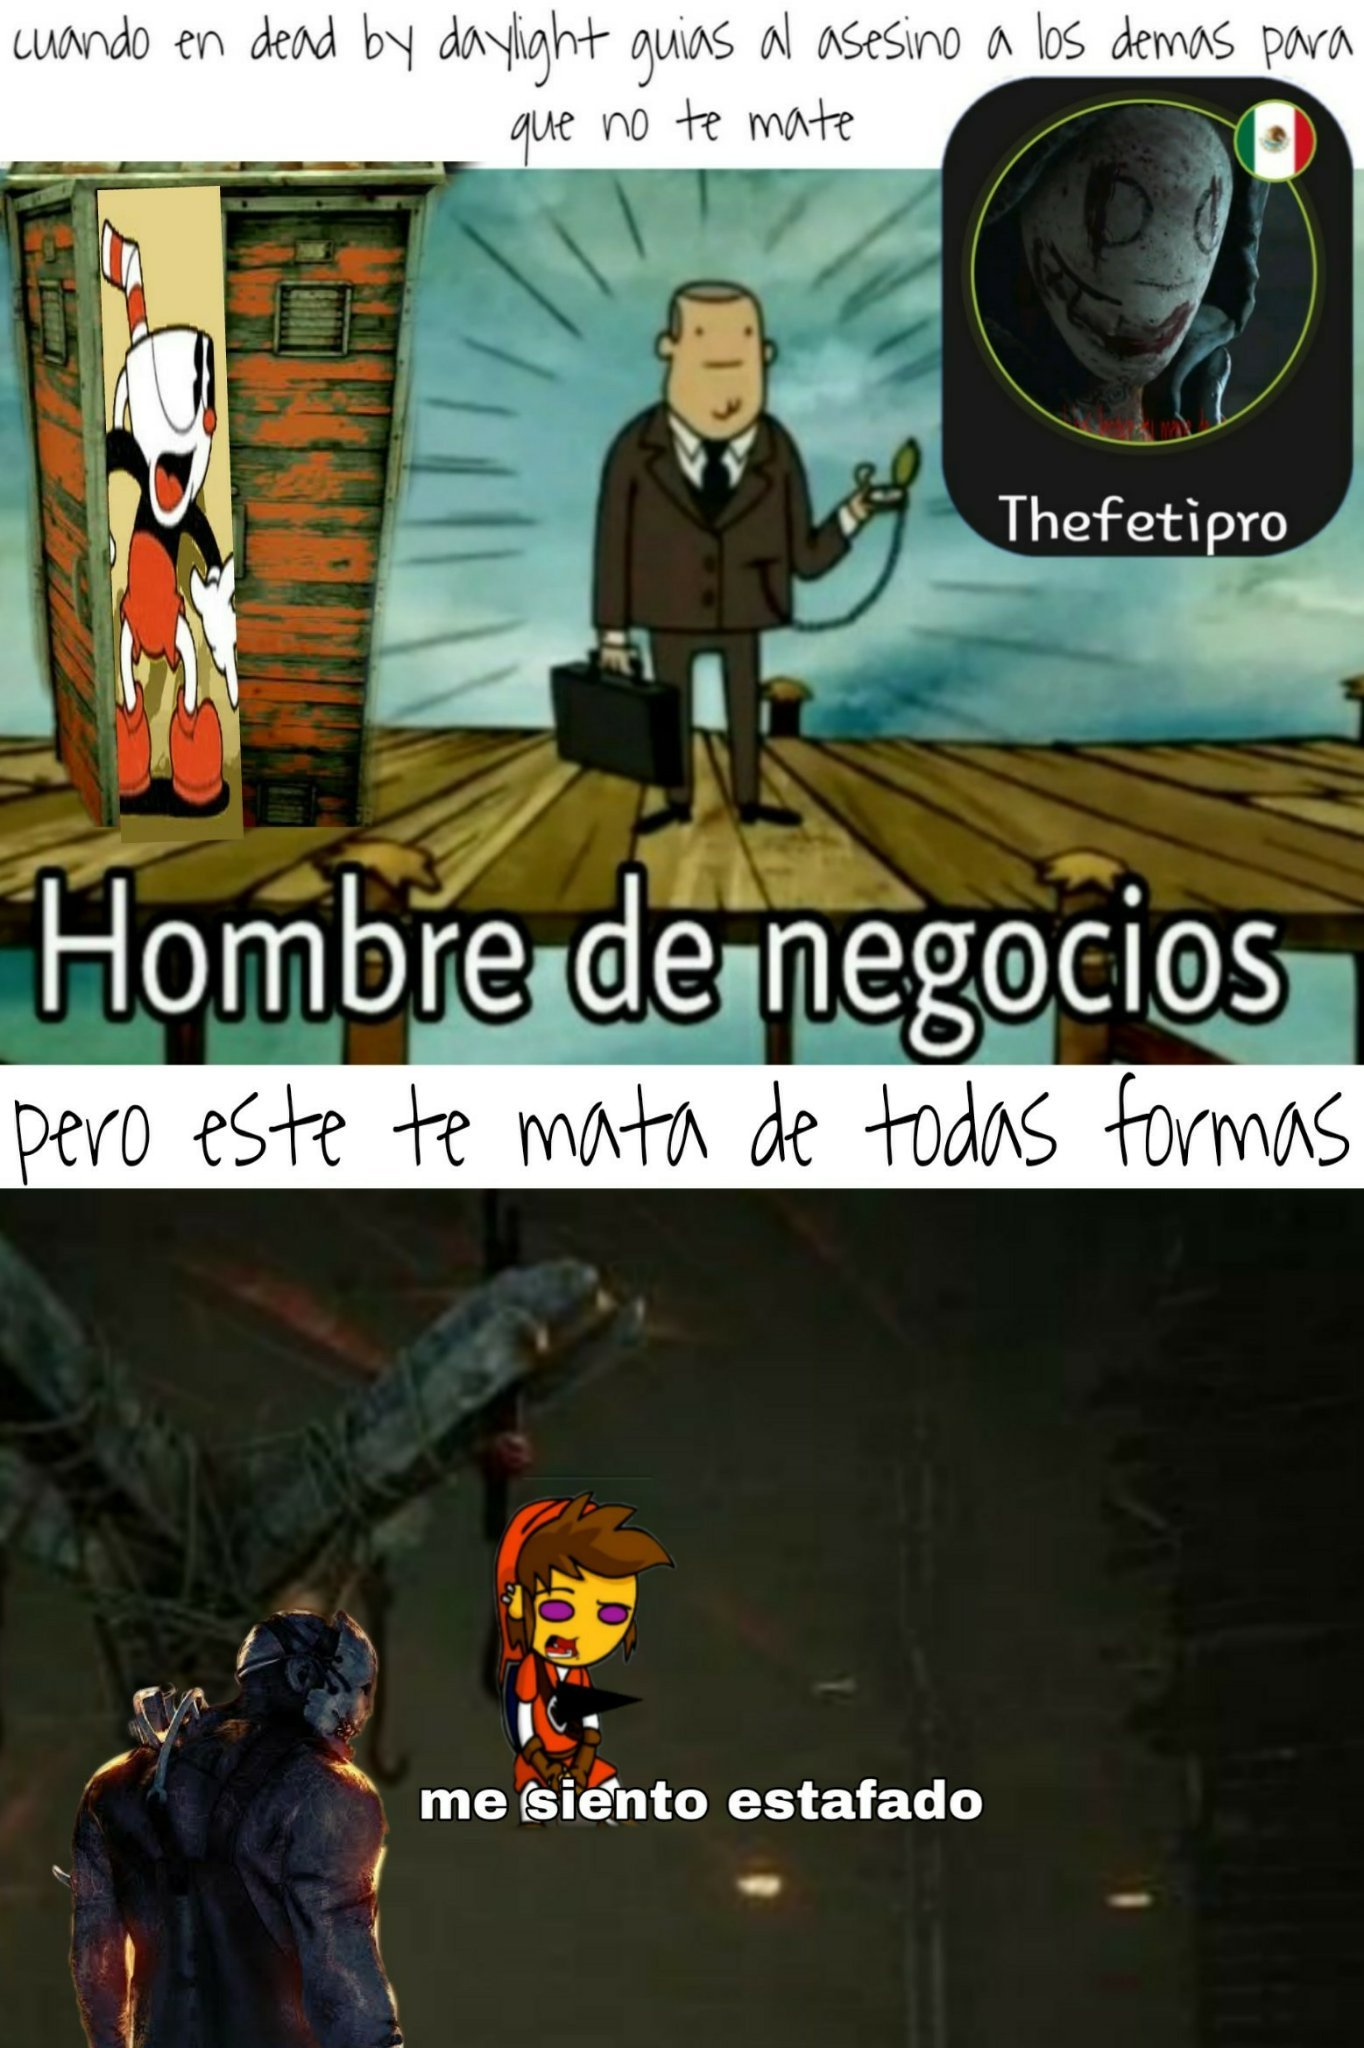 Dead by daylight - meme